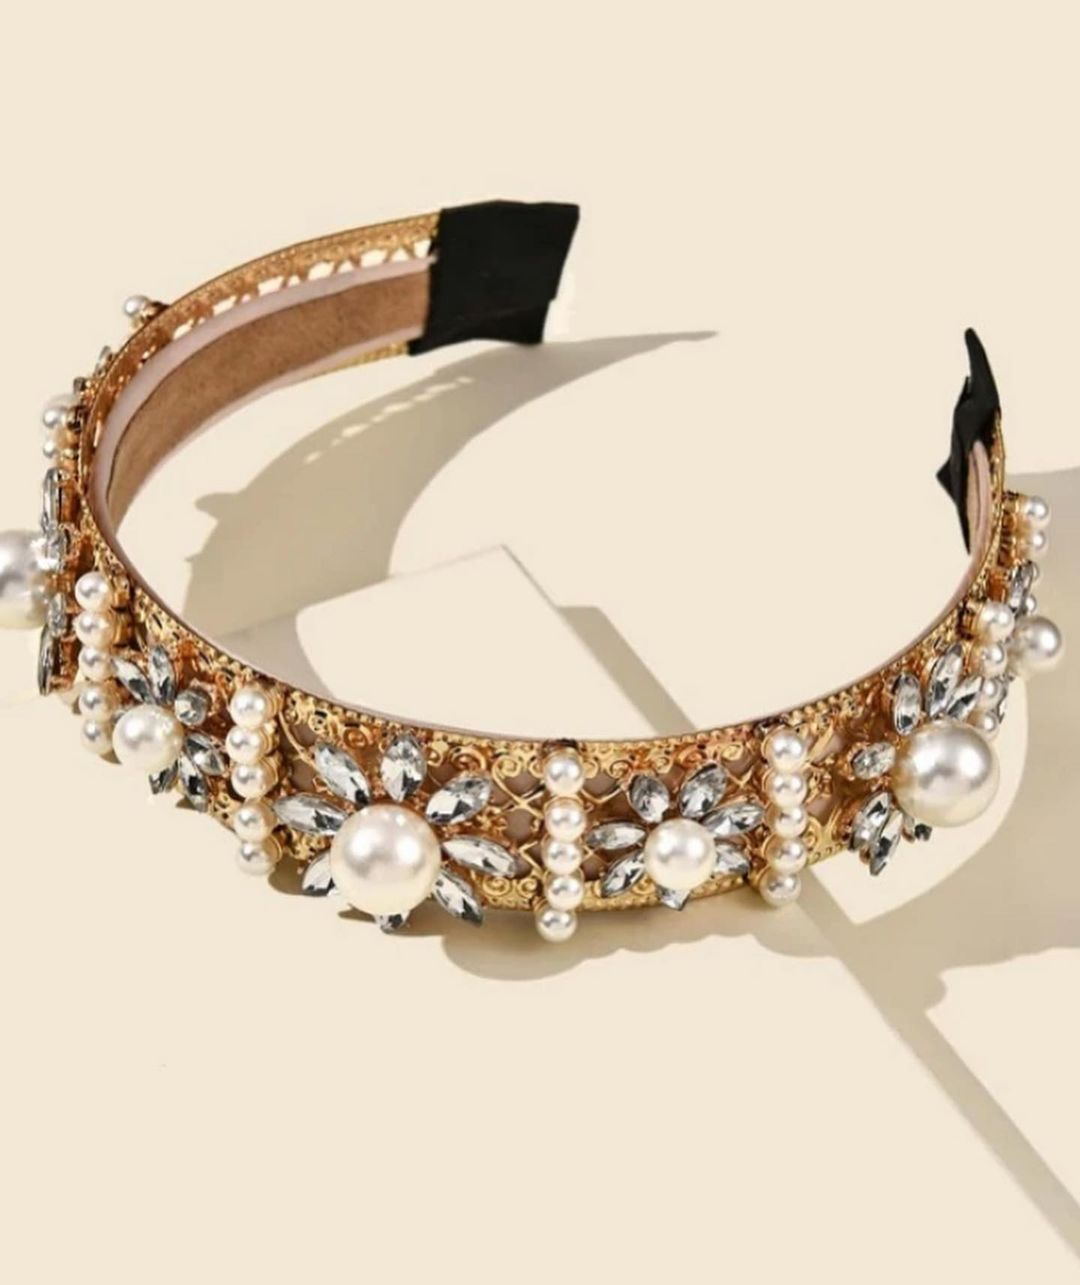 Elegant Gold Hairband with Clear Rhinestones and Pearls